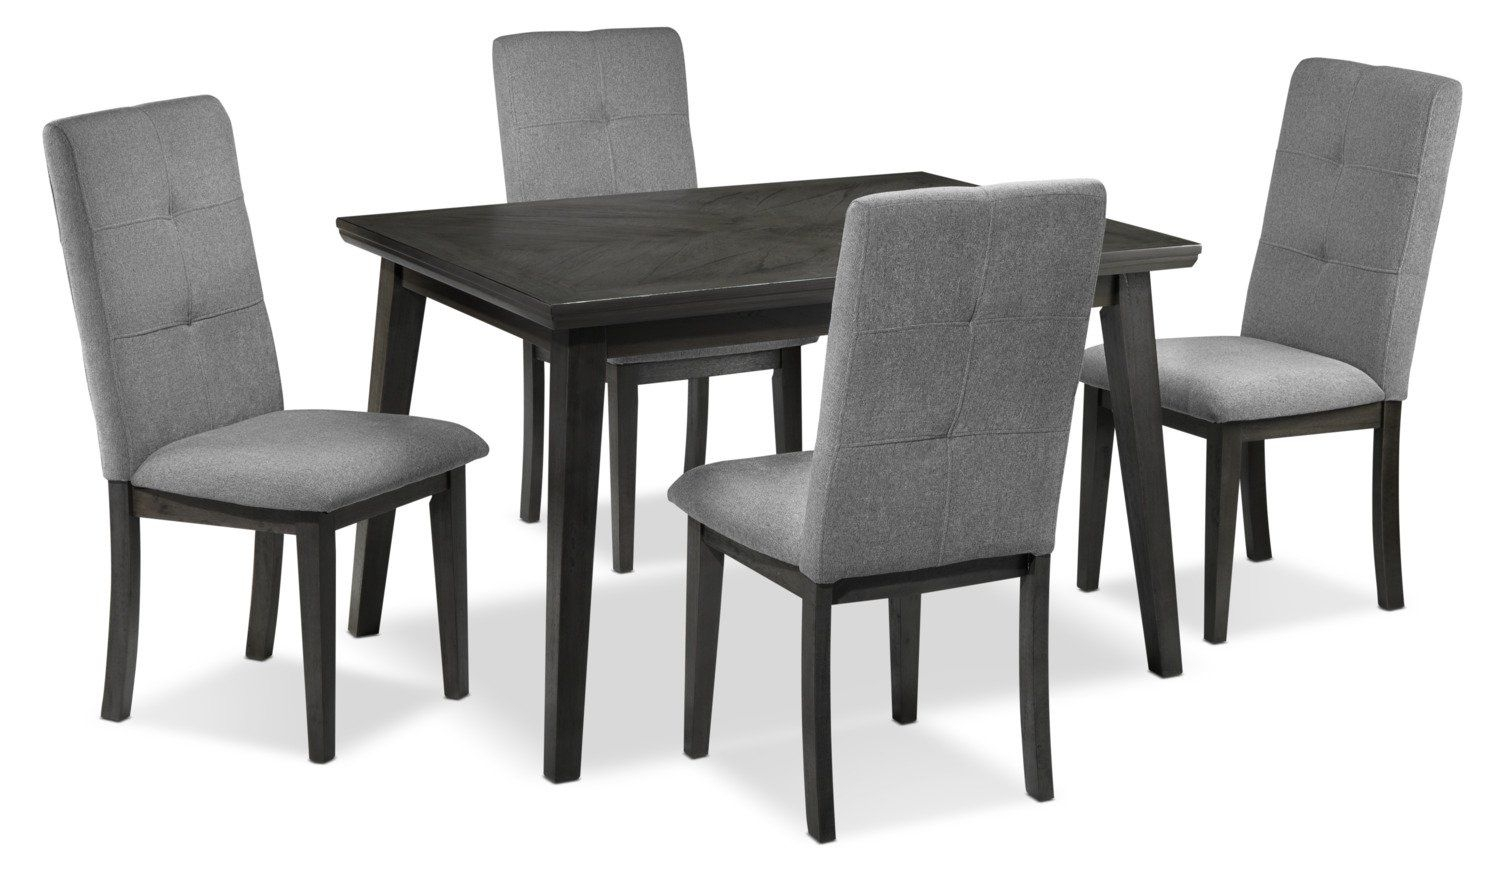 Carson 5 Piece Dinette Set – Grey | Room Decor | Dinette Sets With Regard To Most Current Stouferberg 5 Piece Dining Sets (View 15 of 20)